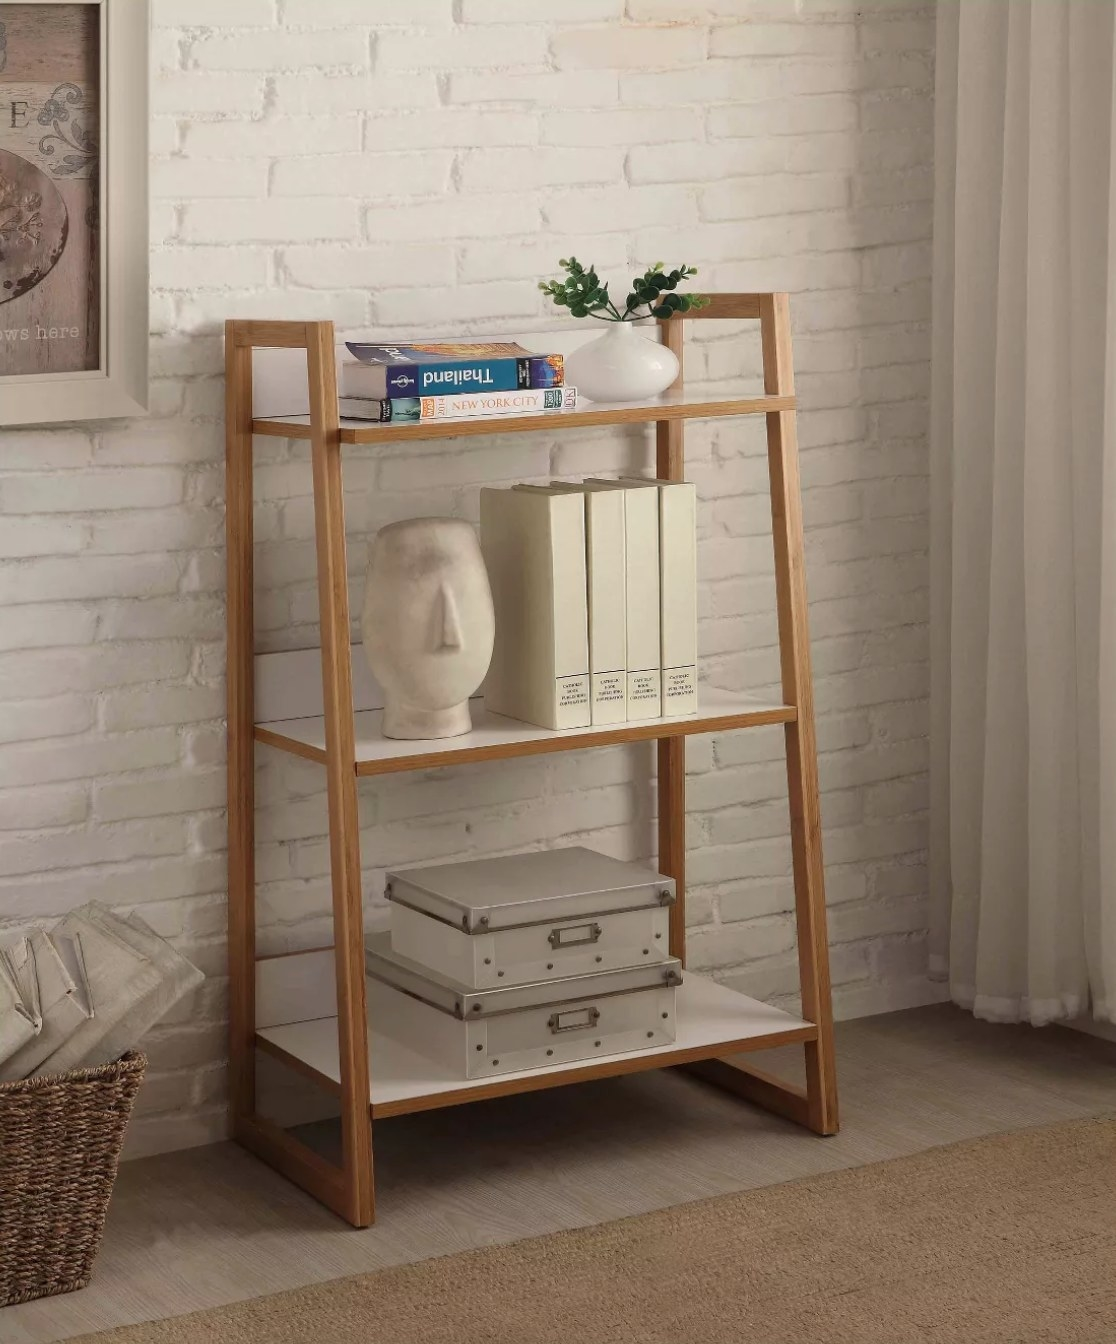 The three-tier shelf in wood